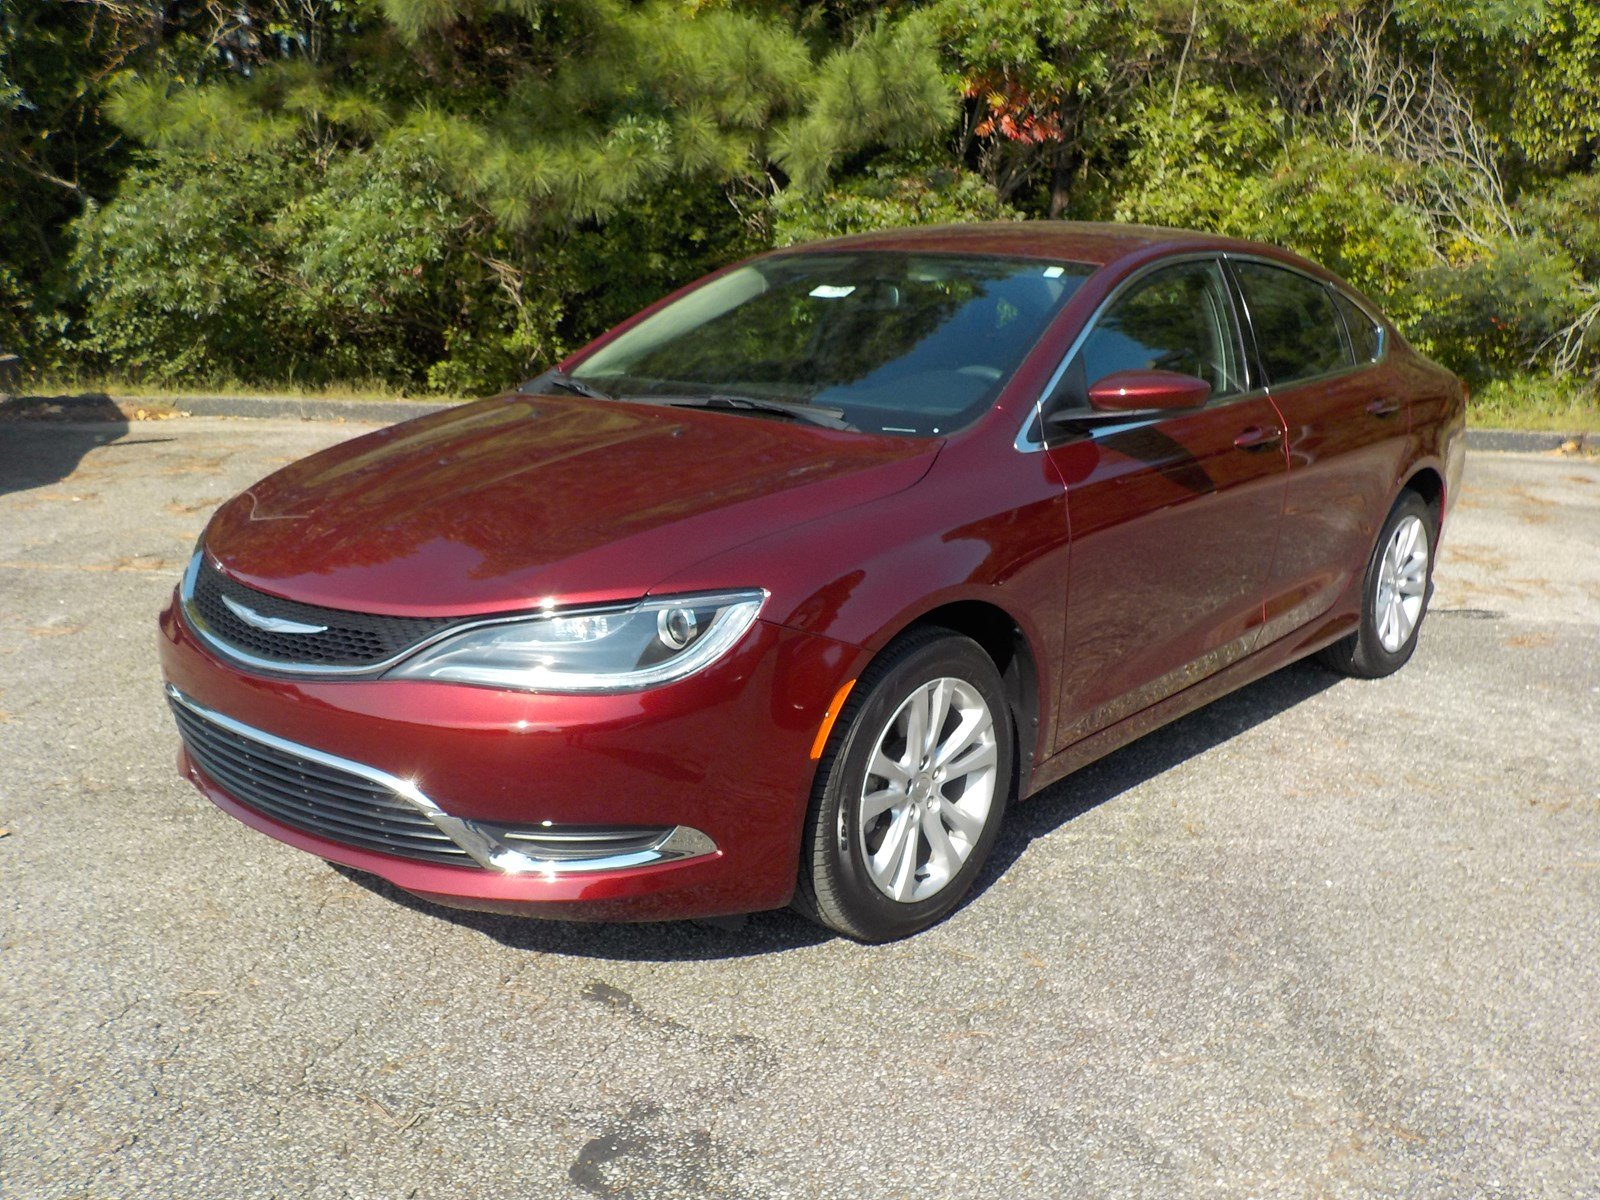 Certified Pre Owned 2016 Chrysler 200 Limited 4dr Car in Lexington